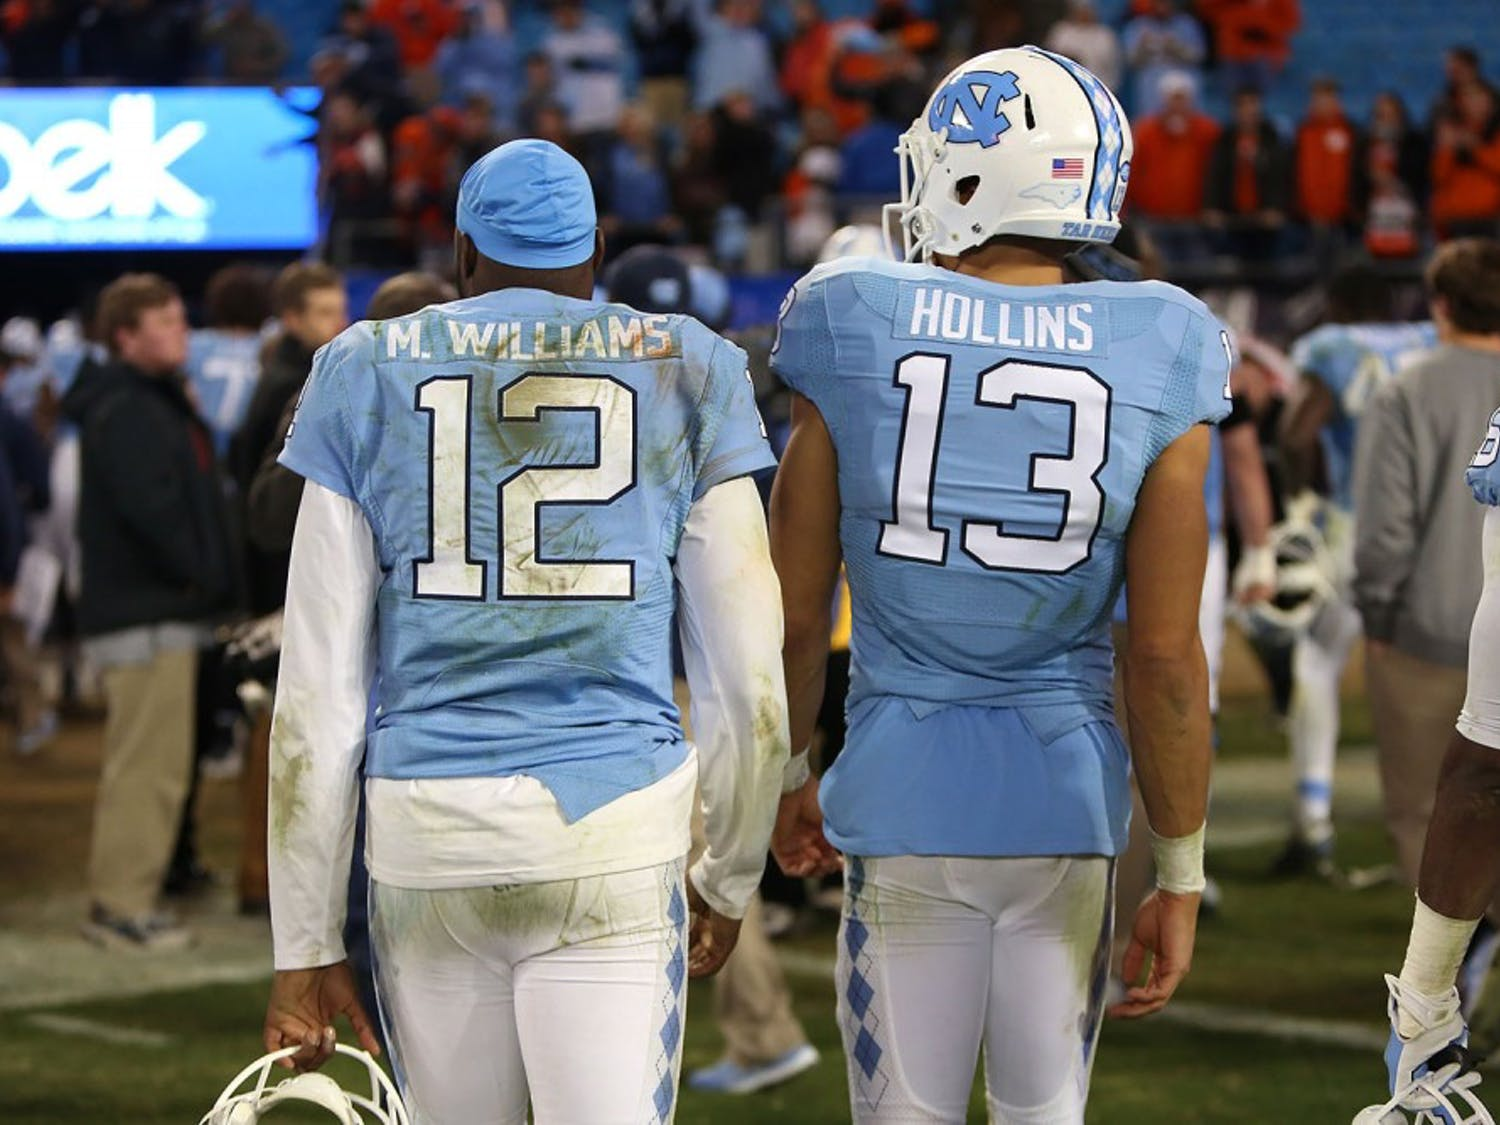 Marquise Williams (12) and Mack Hollins (13) walk back to the Carolina locker room at the conclusion of the game.